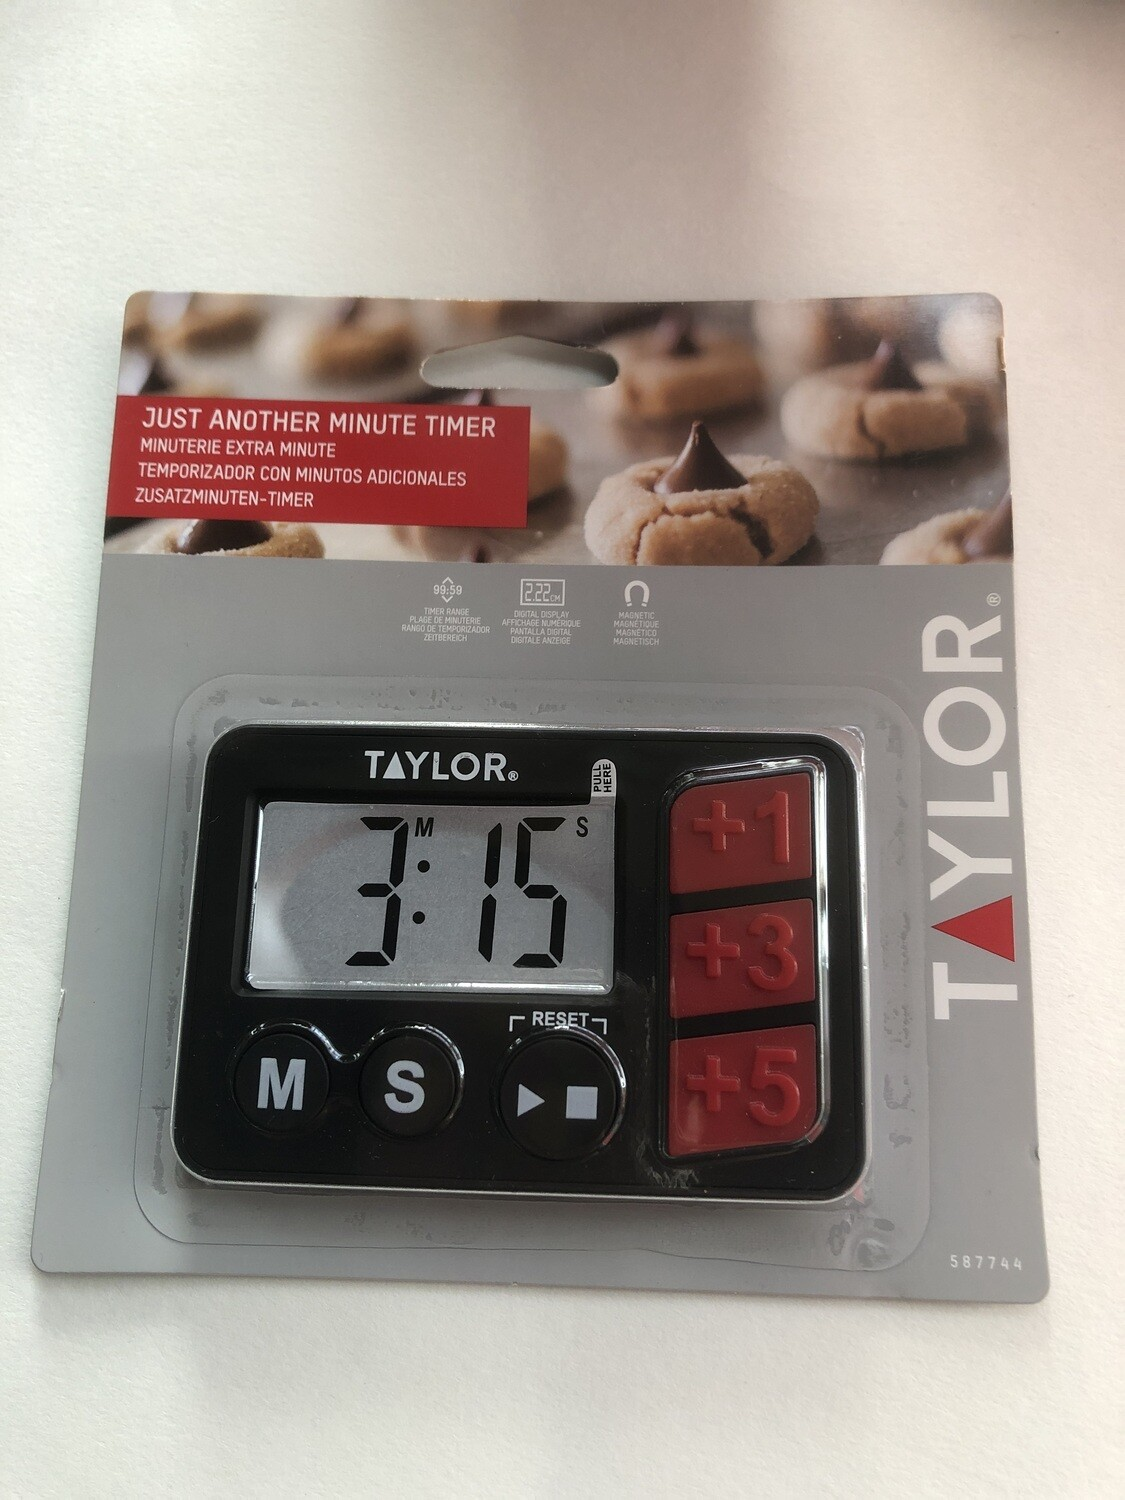 TAYLOR - DIGITAL TIMER ANOTHER MINUTE